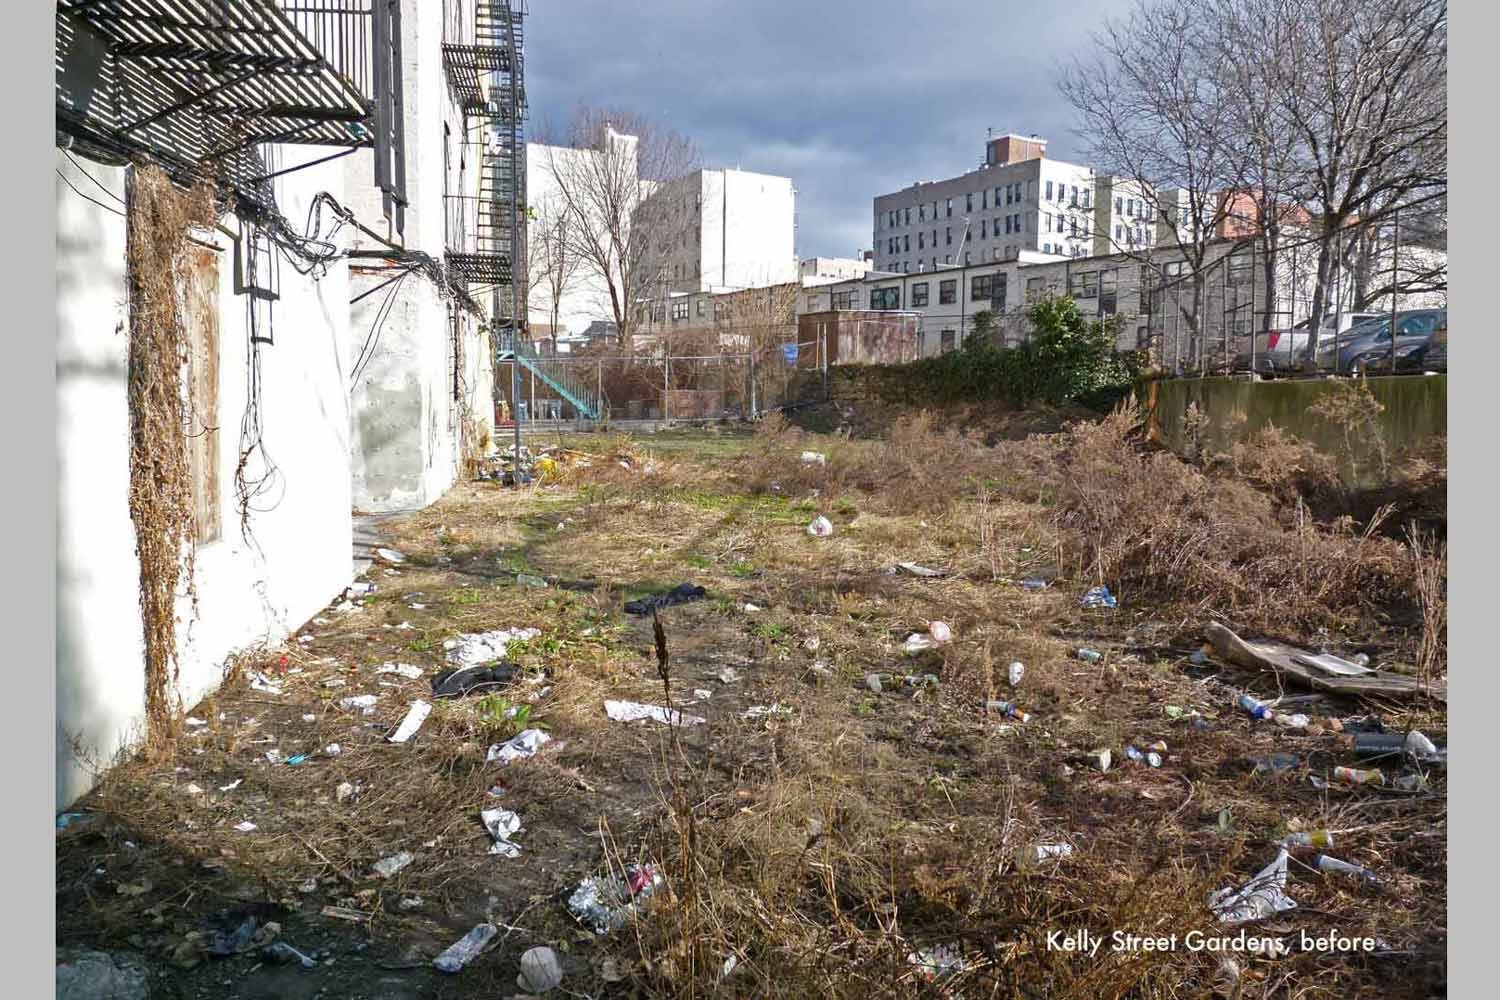 Before being rehabbed and converted into a garden, this valuable community asset lay fallow and full of trash.